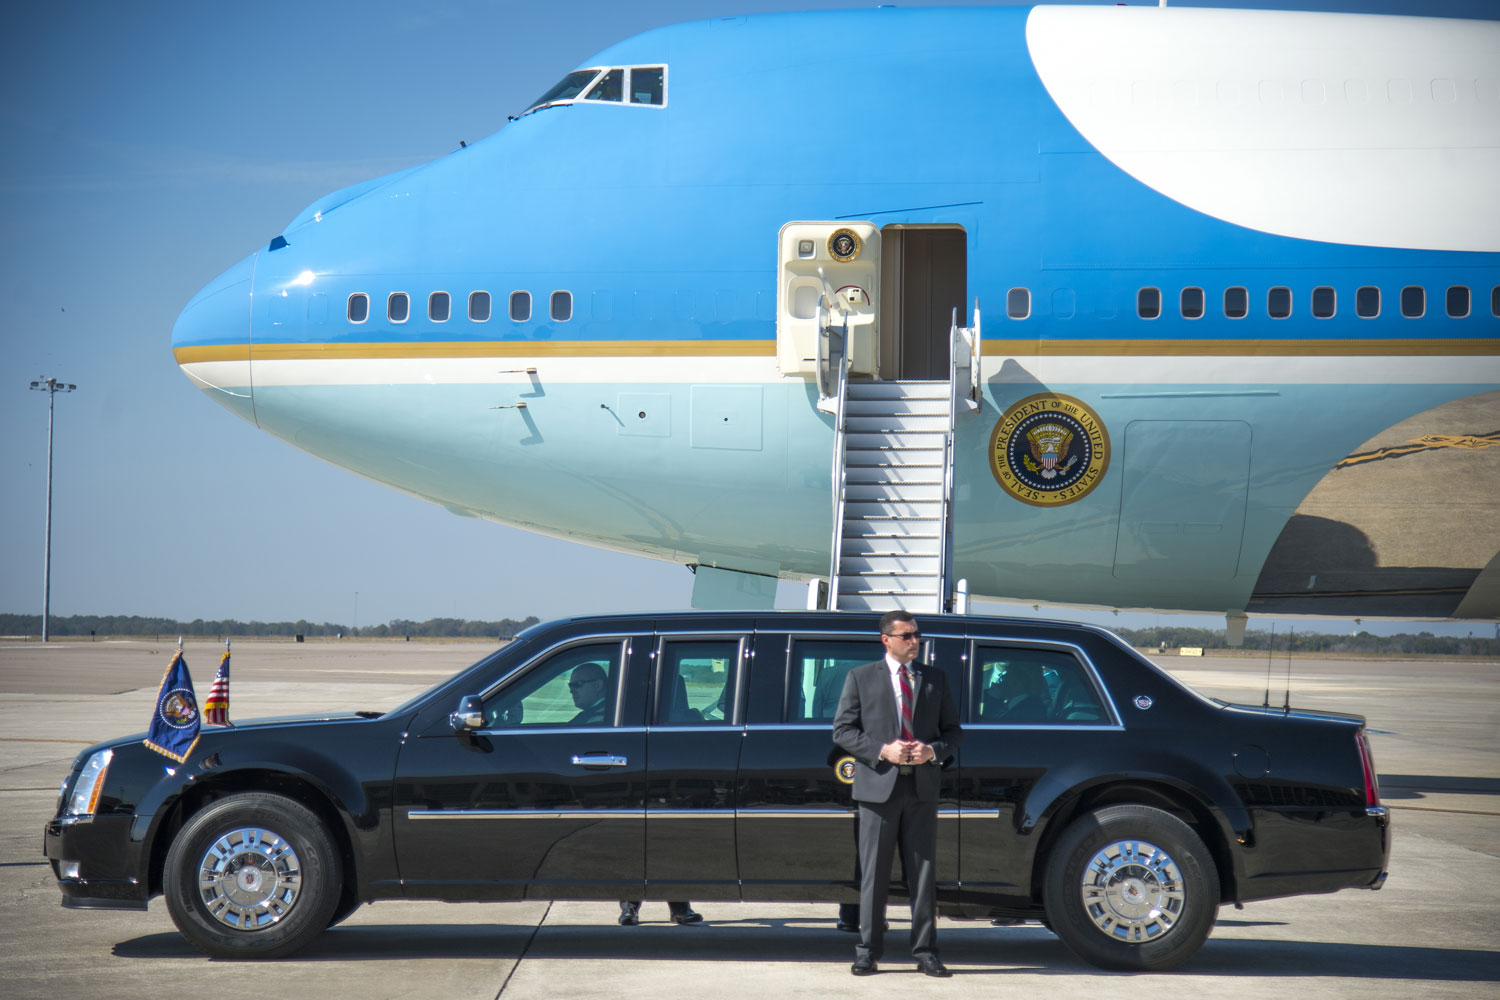 Damaged Air Force One Cost Millions of Dollars to Fix Air